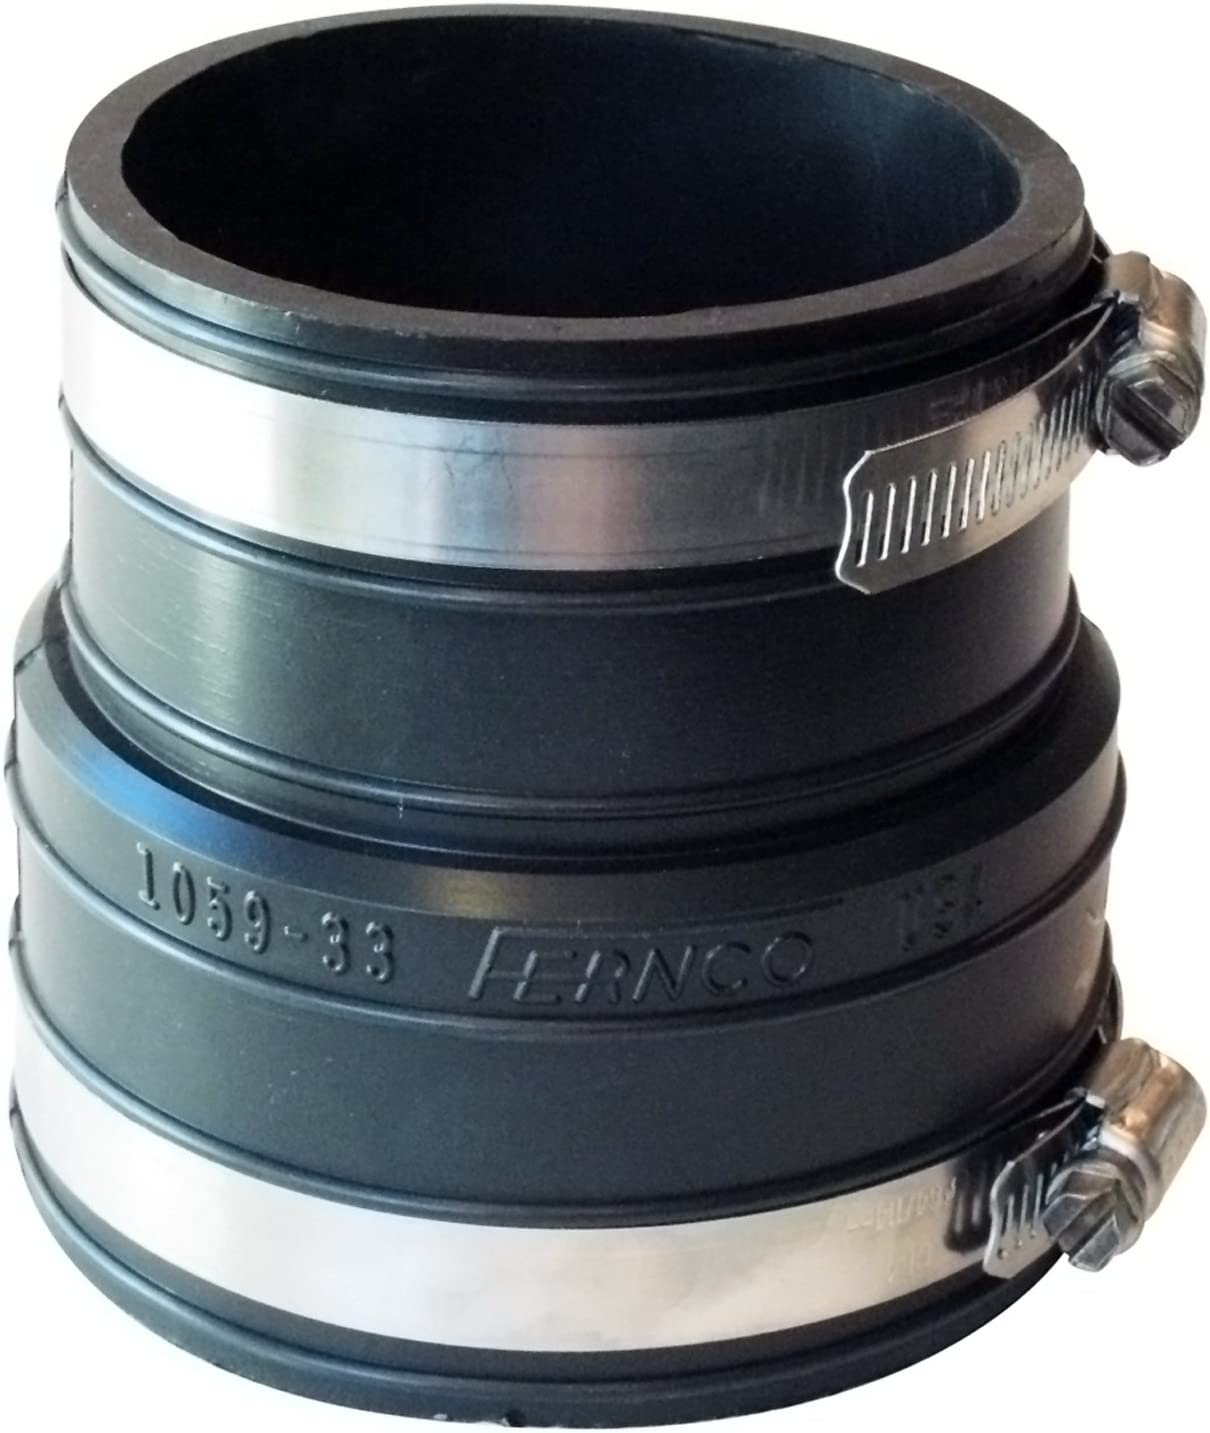 Inner Diameter Rubber Flexible Coupling Repair Fitting Fernco P1059-33 3-Inch by 3-Inch